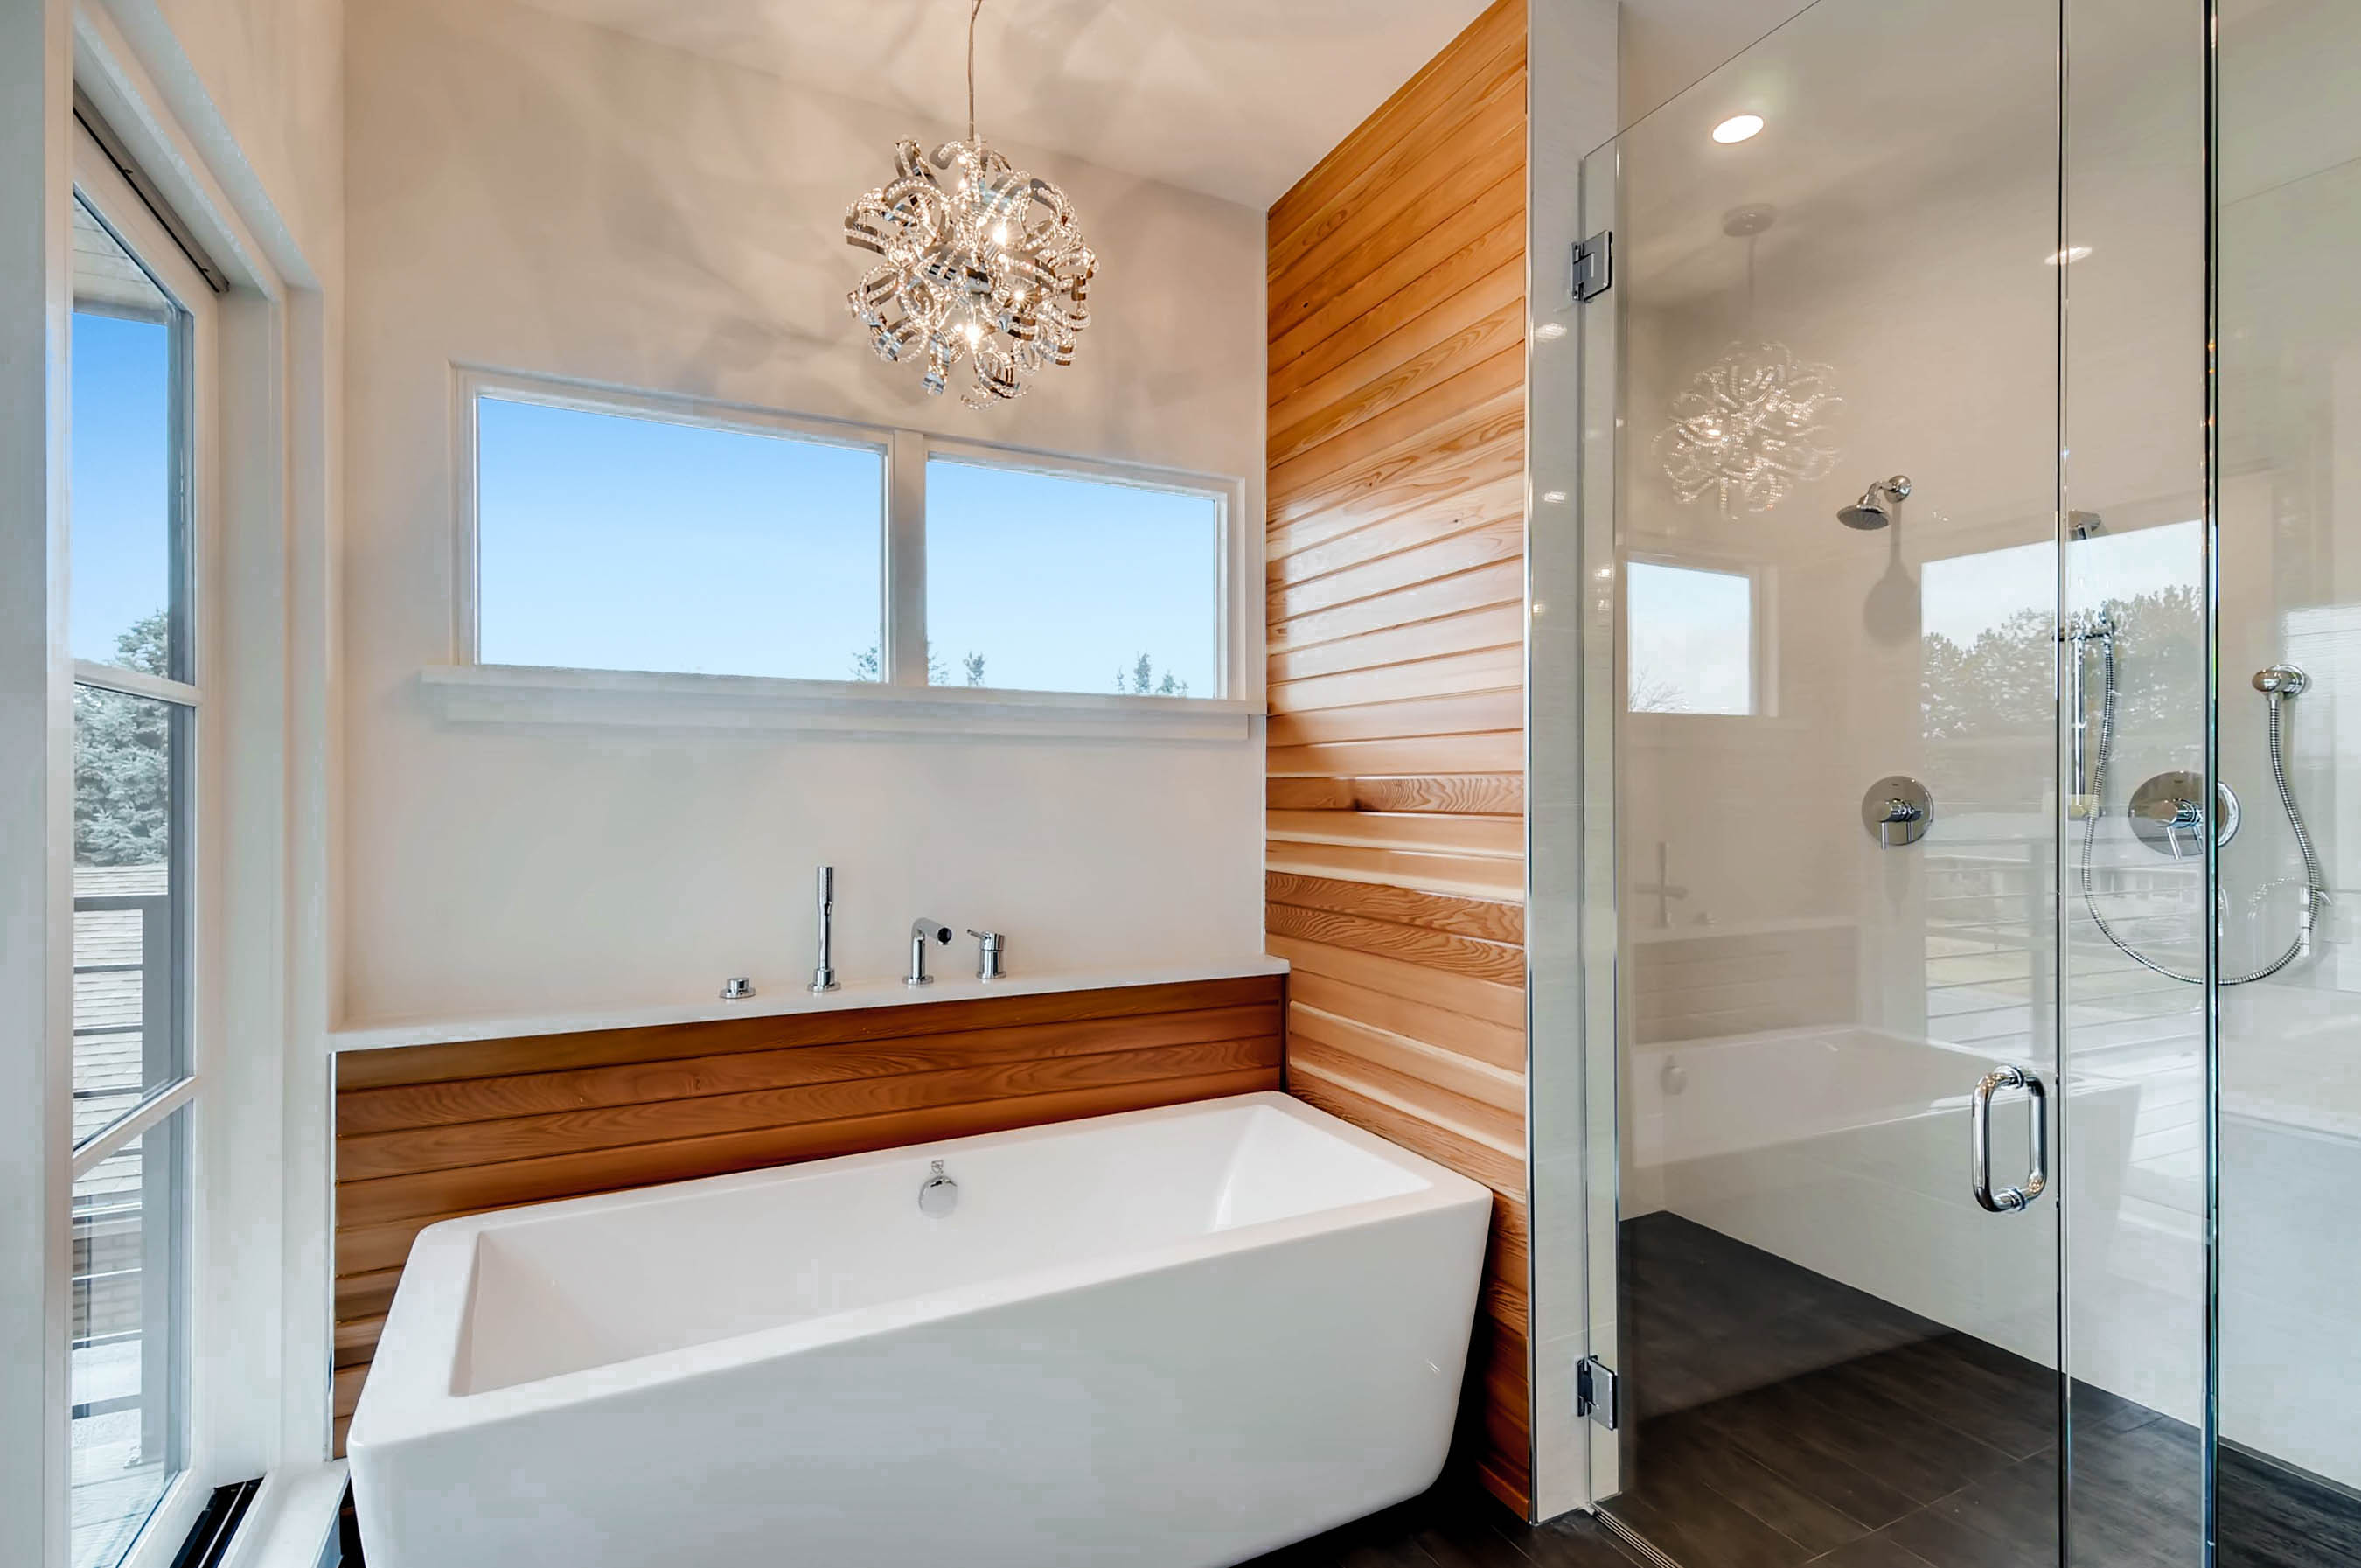 bathroom remodel denver. Alton Construction Do All Type Of Bathroom Remodeling In Denver Metro Remodel